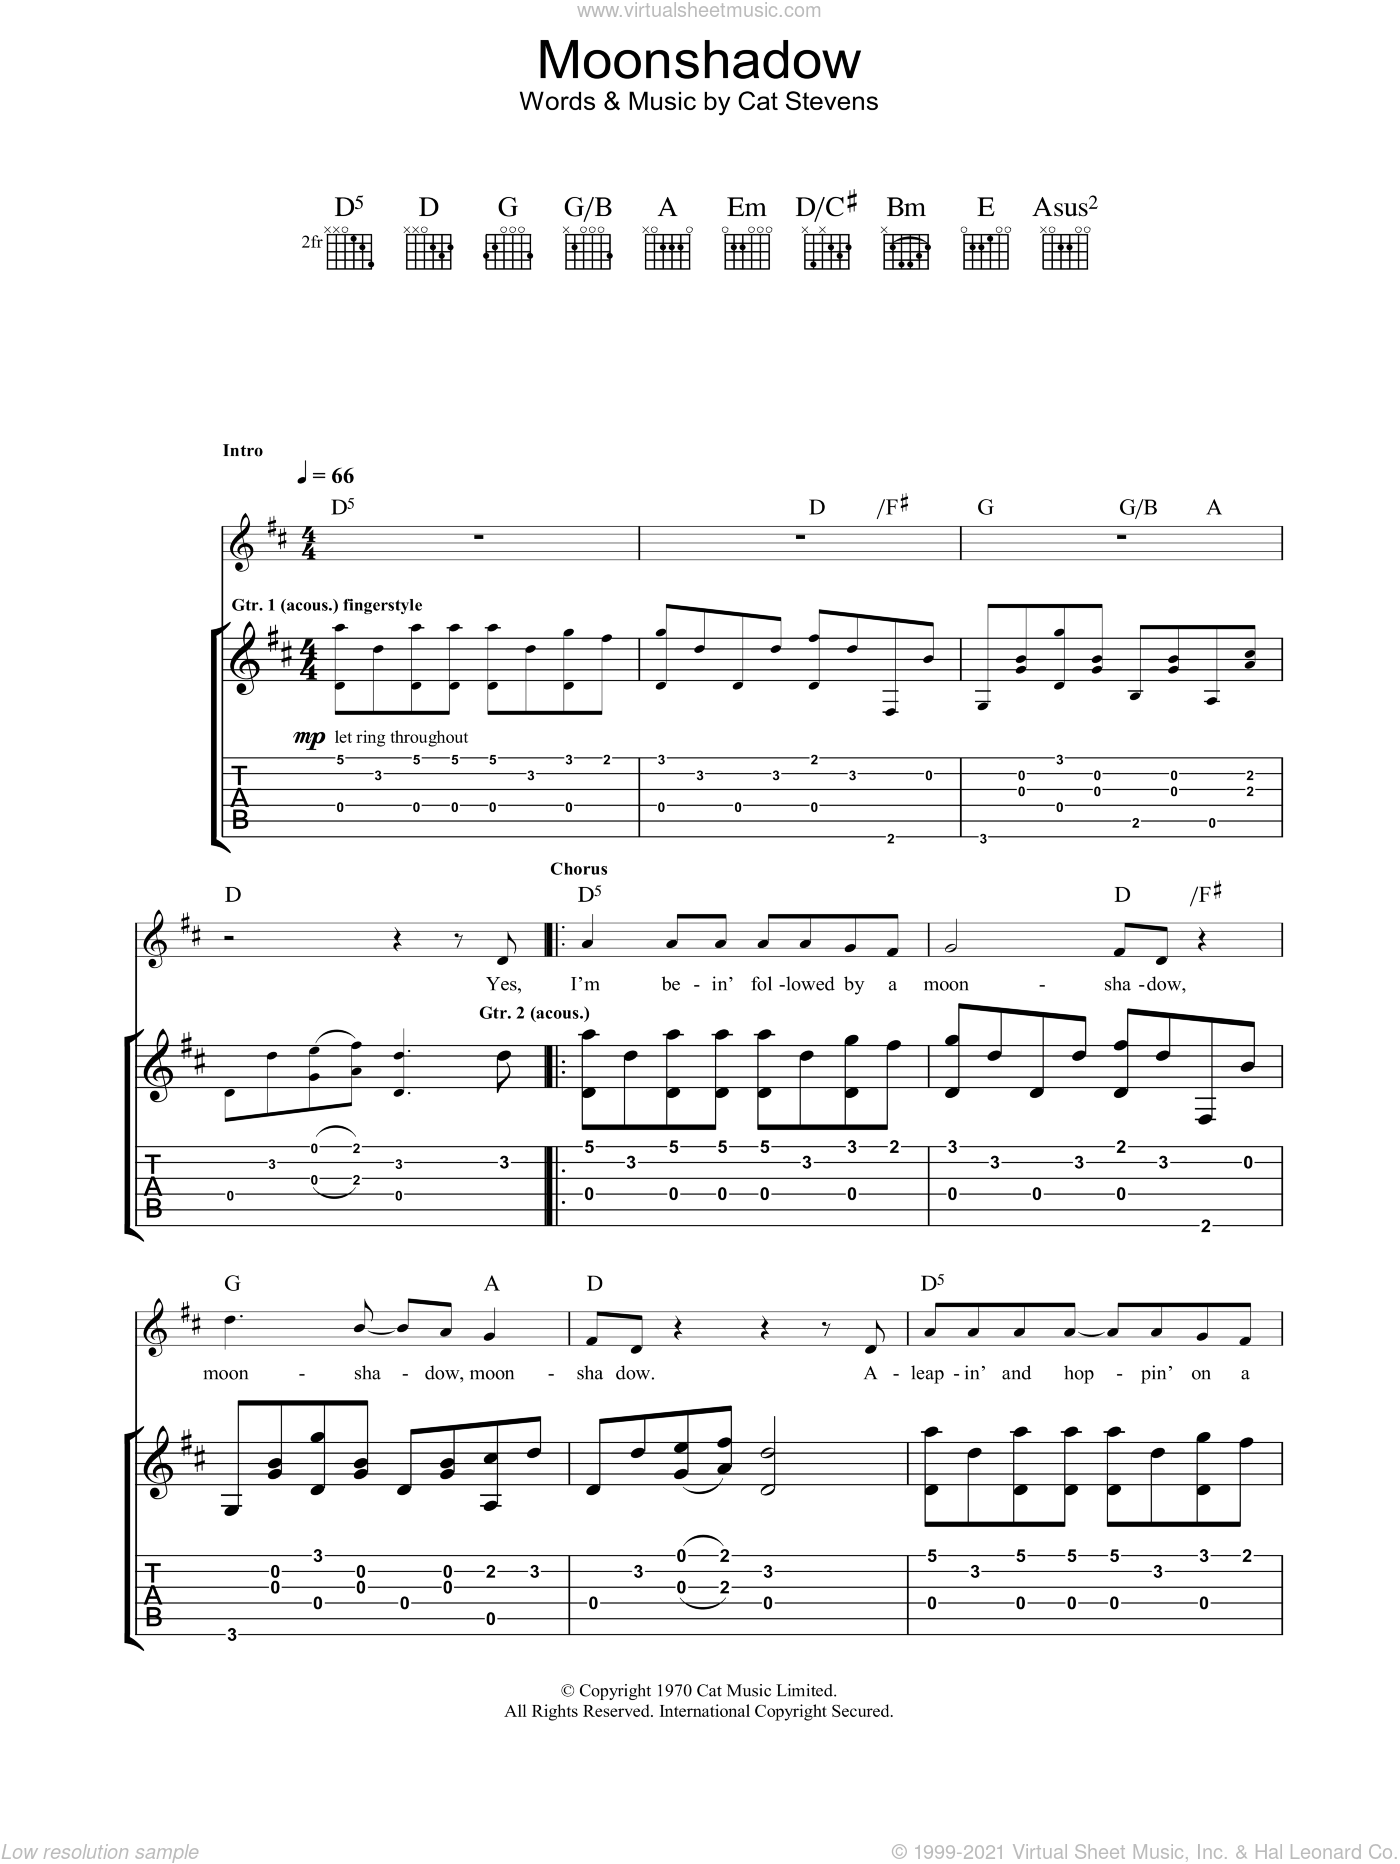 Moonshadow sheet music for guitar (tablature) by Cat Stevens, intermediate skill level